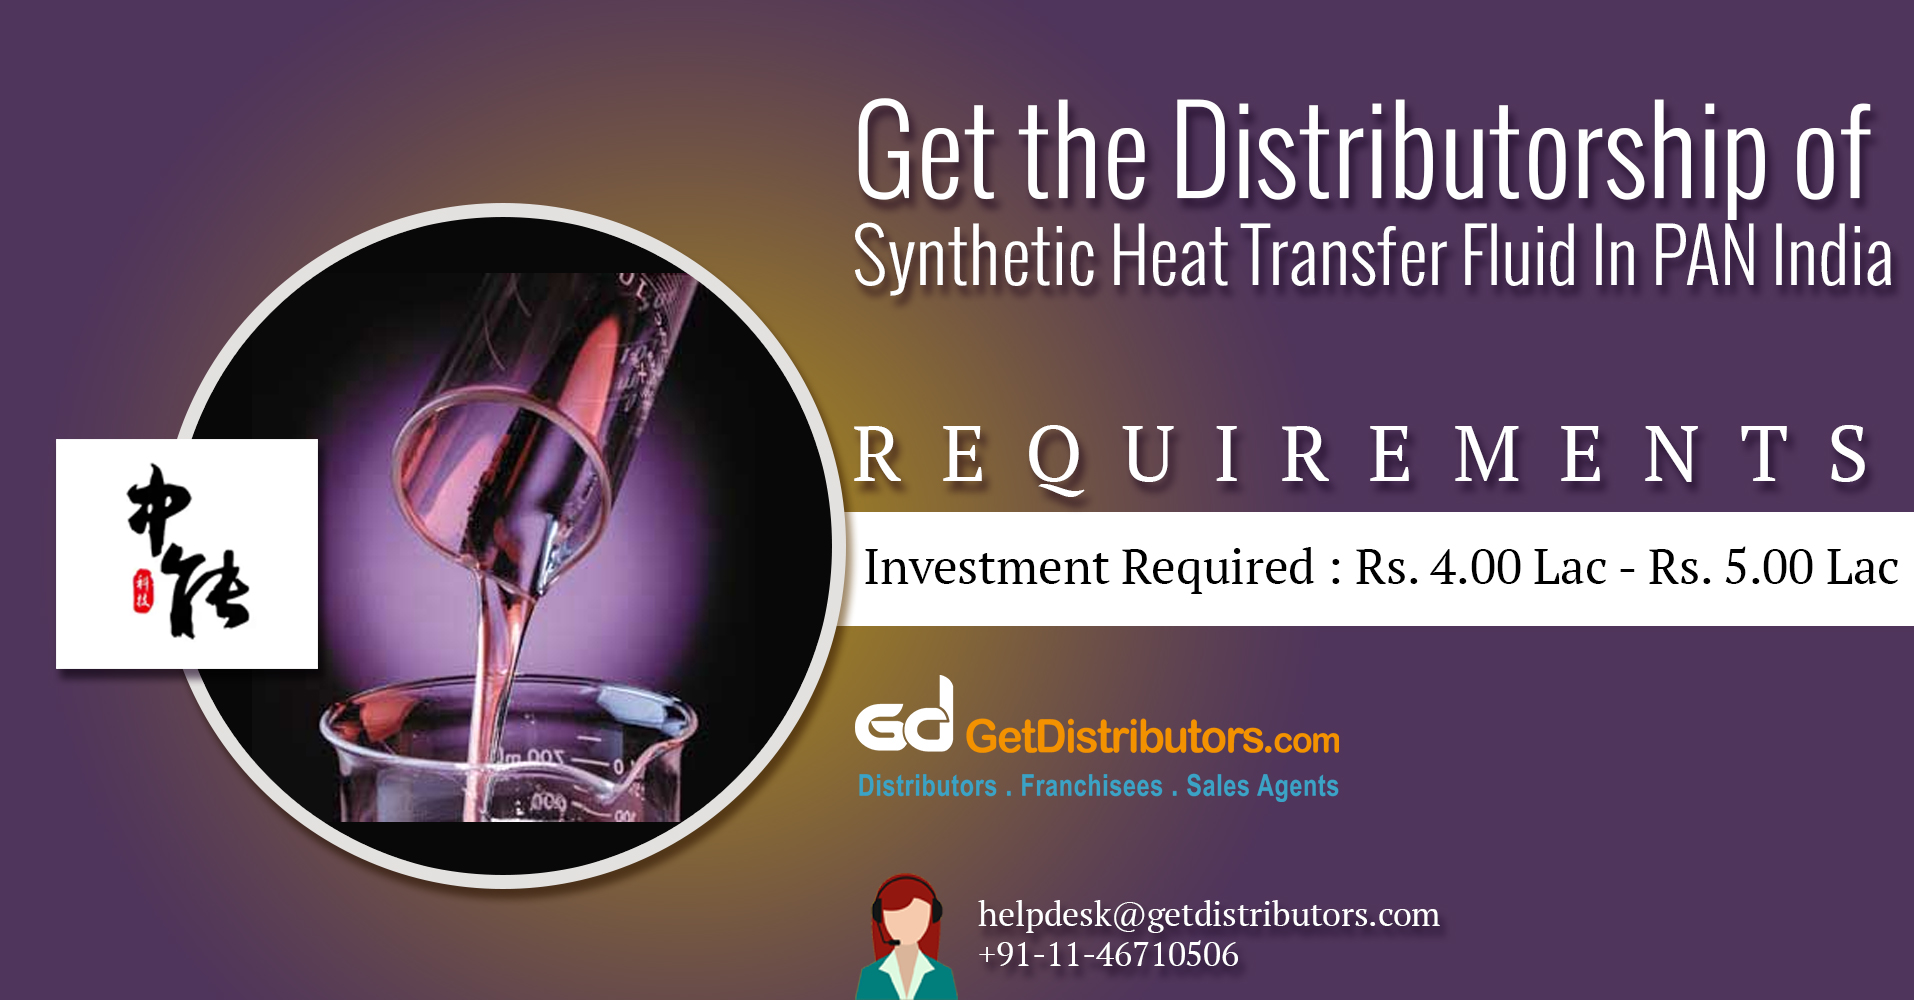 Safe To Use Heat Transfer Fluids And Functional Chemicals At Affordable Prices